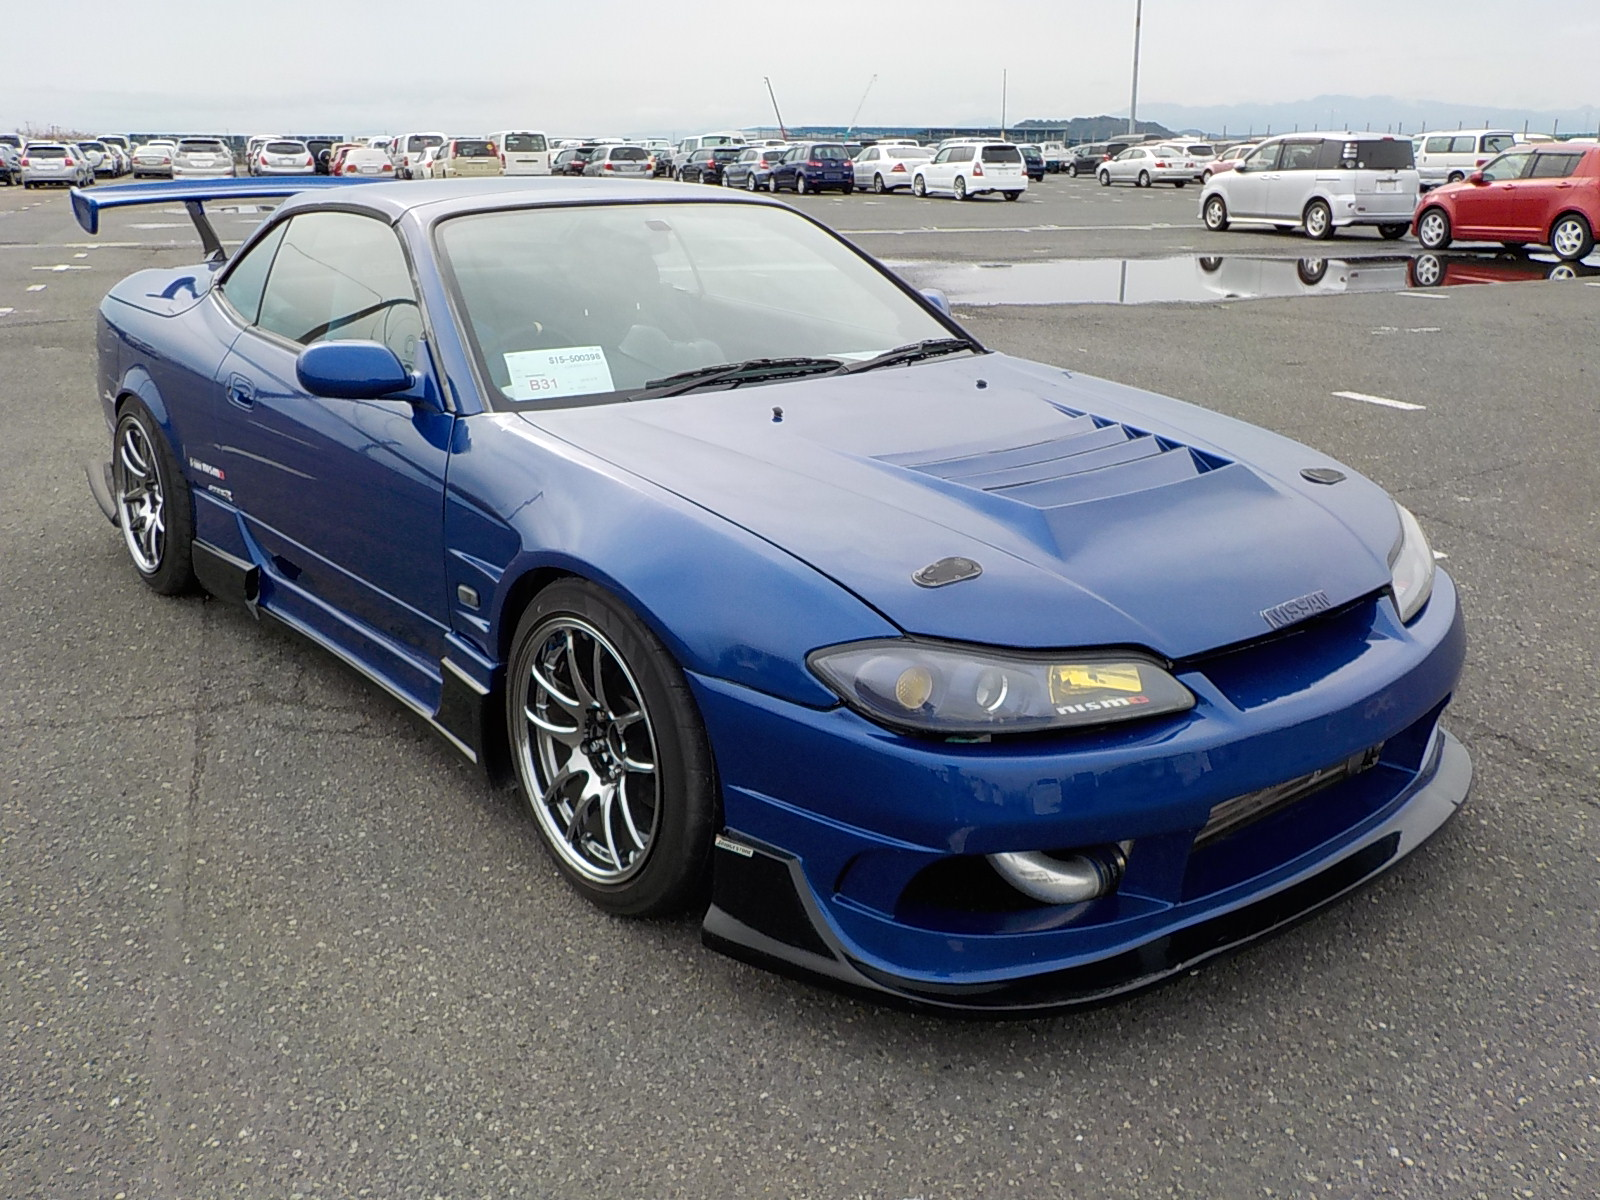 2000 nissan silvia s15 varietta 6 speed manual http. Black Bedroom Furniture Sets. Home Design Ideas